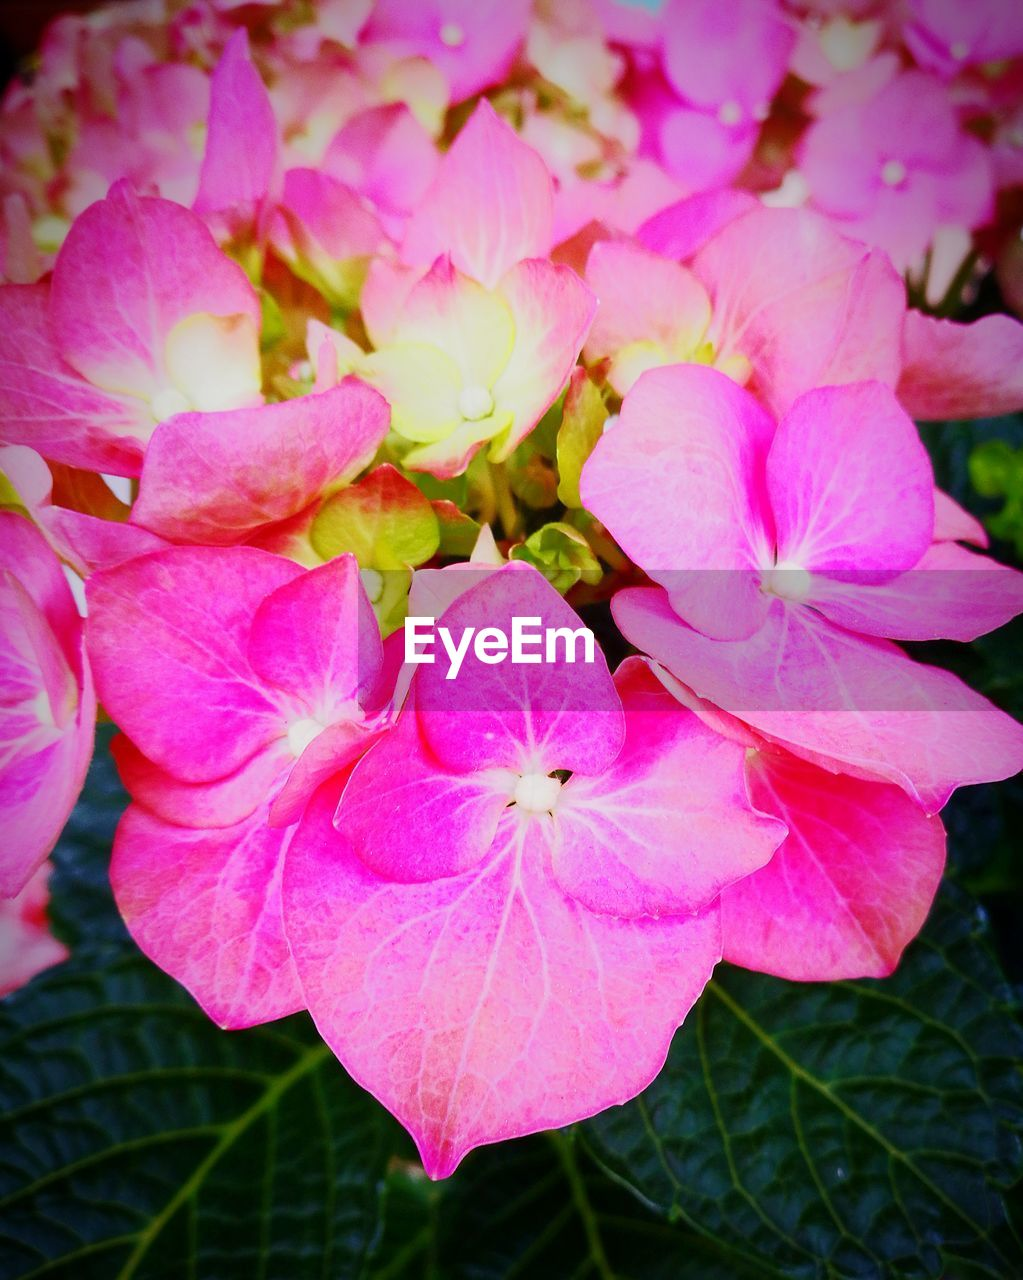 flower, pink color, petal, beauty in nature, growth, freshness, flower head, fragility, nature, close-up, no people, plant, blooming, outdoors, day, periwinkle, petunia